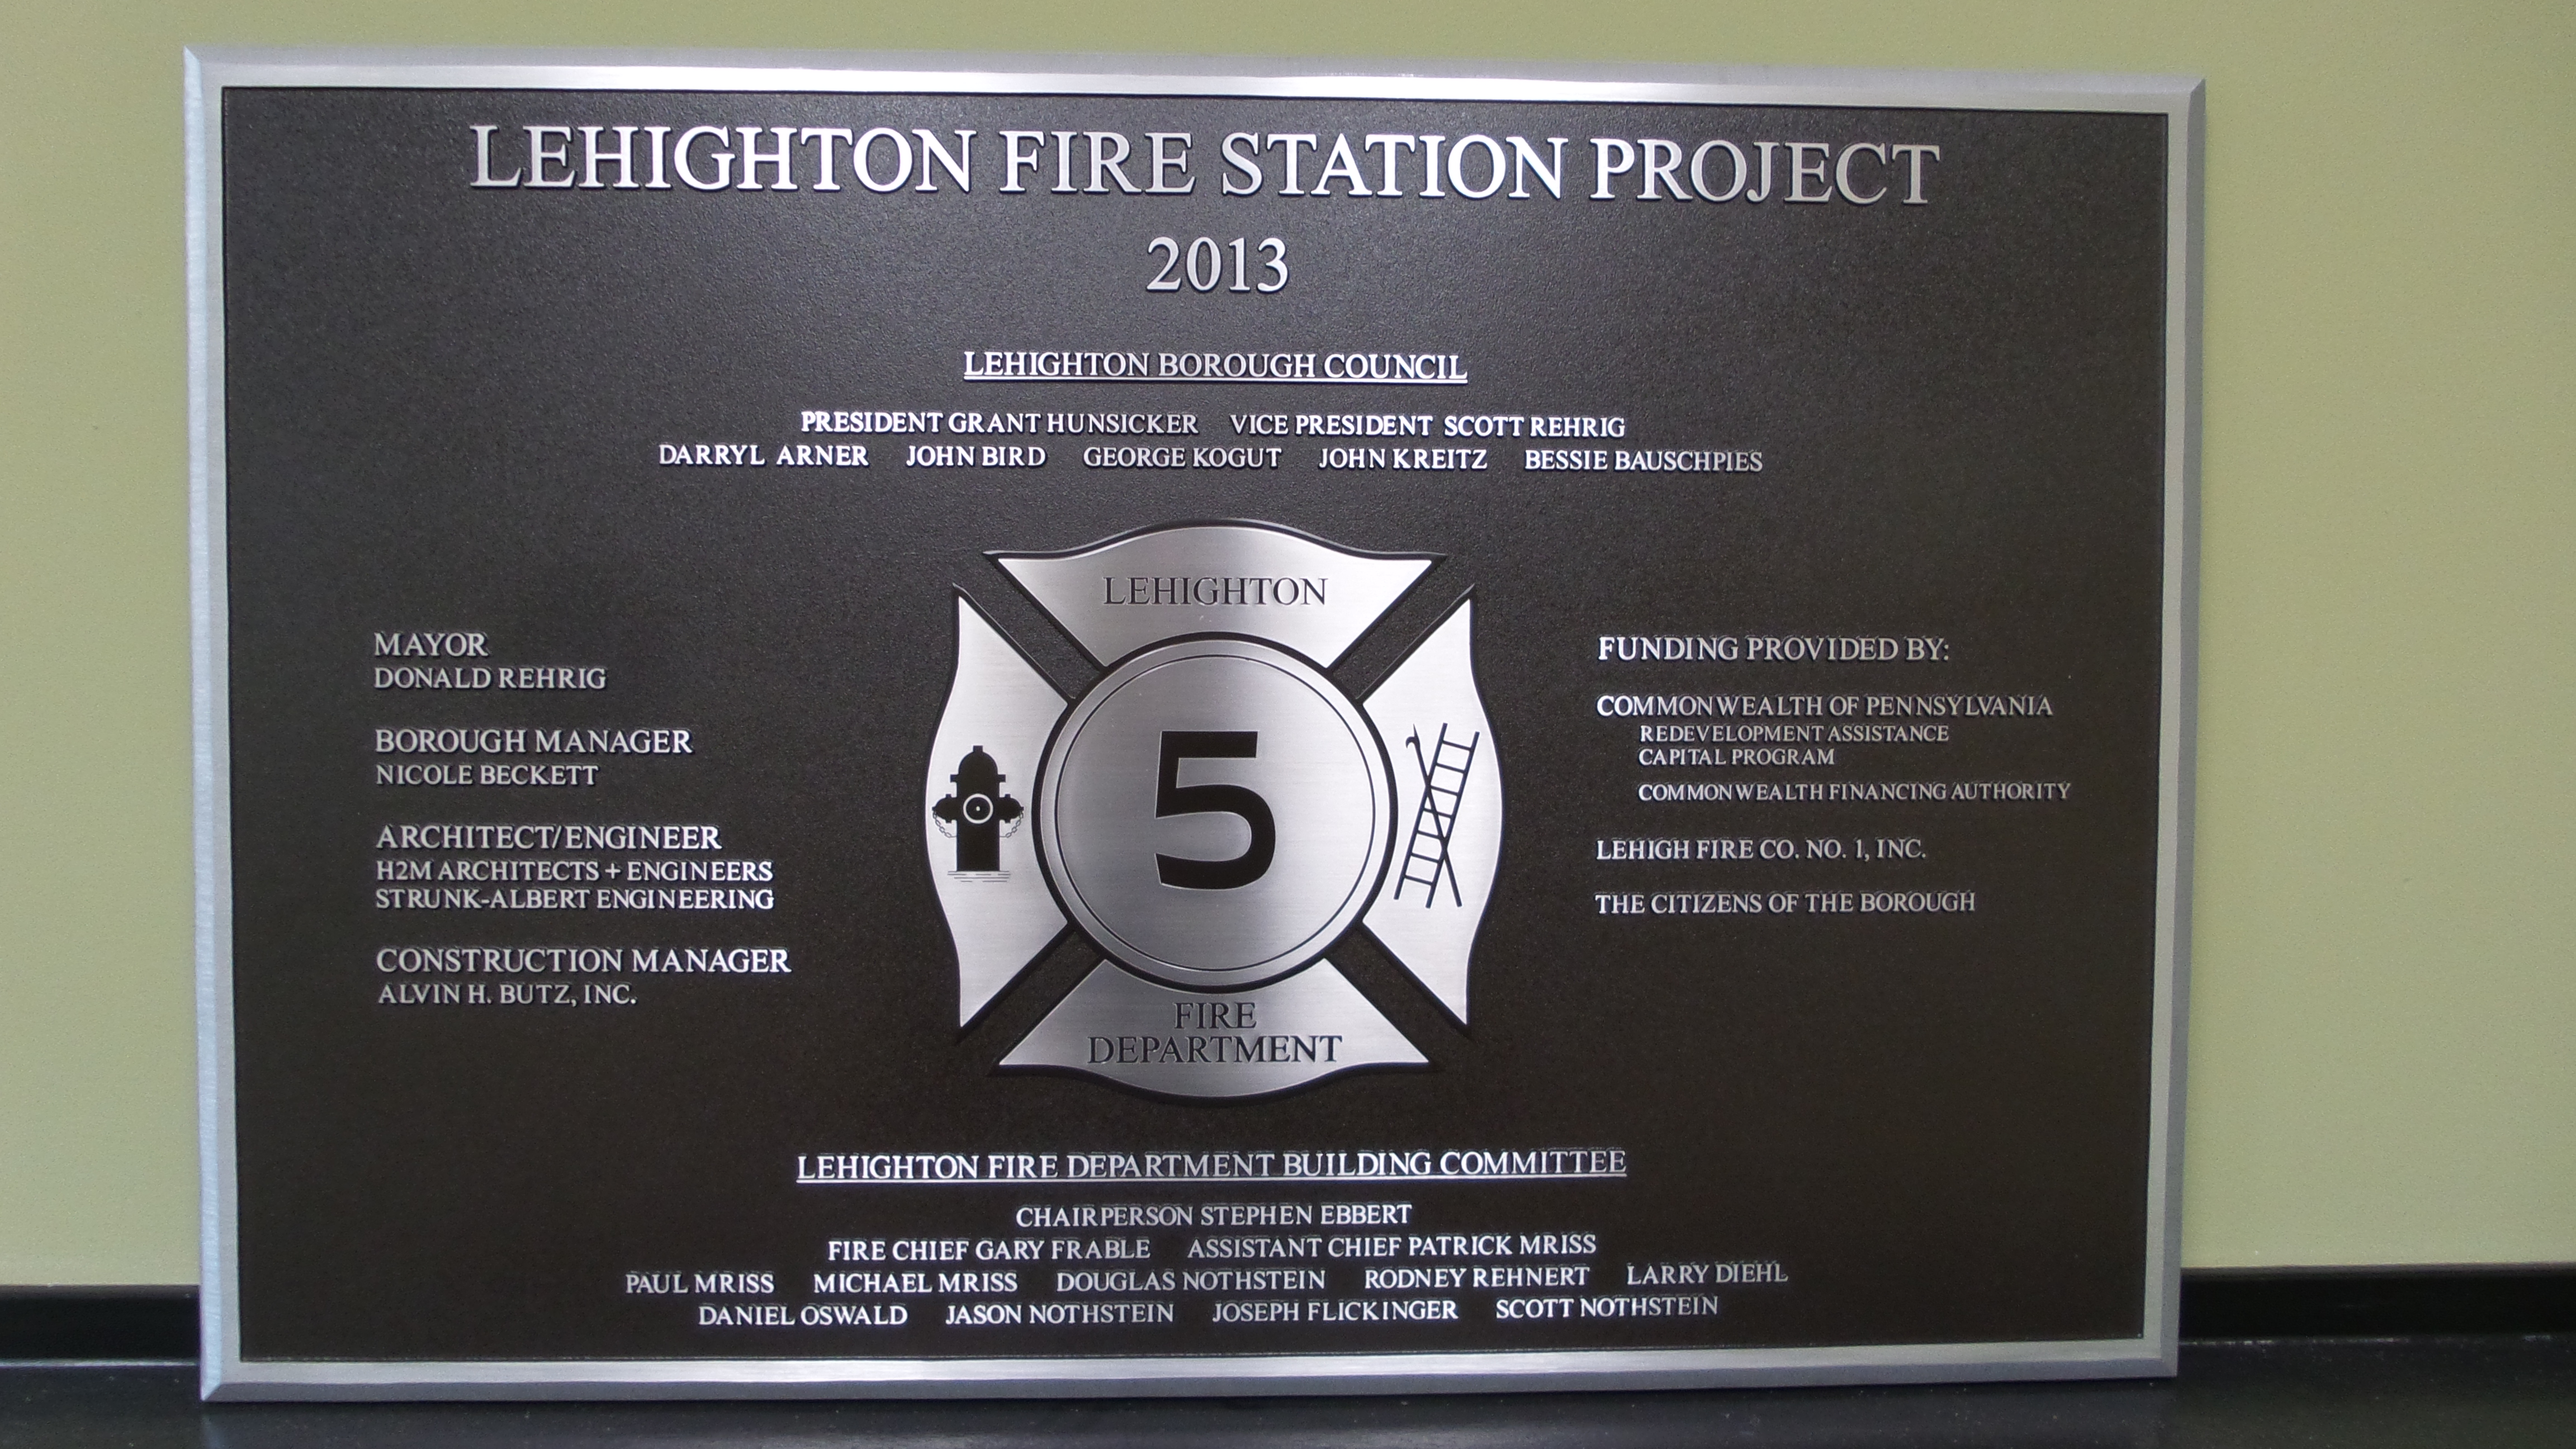 Lehighton Fire Station Project